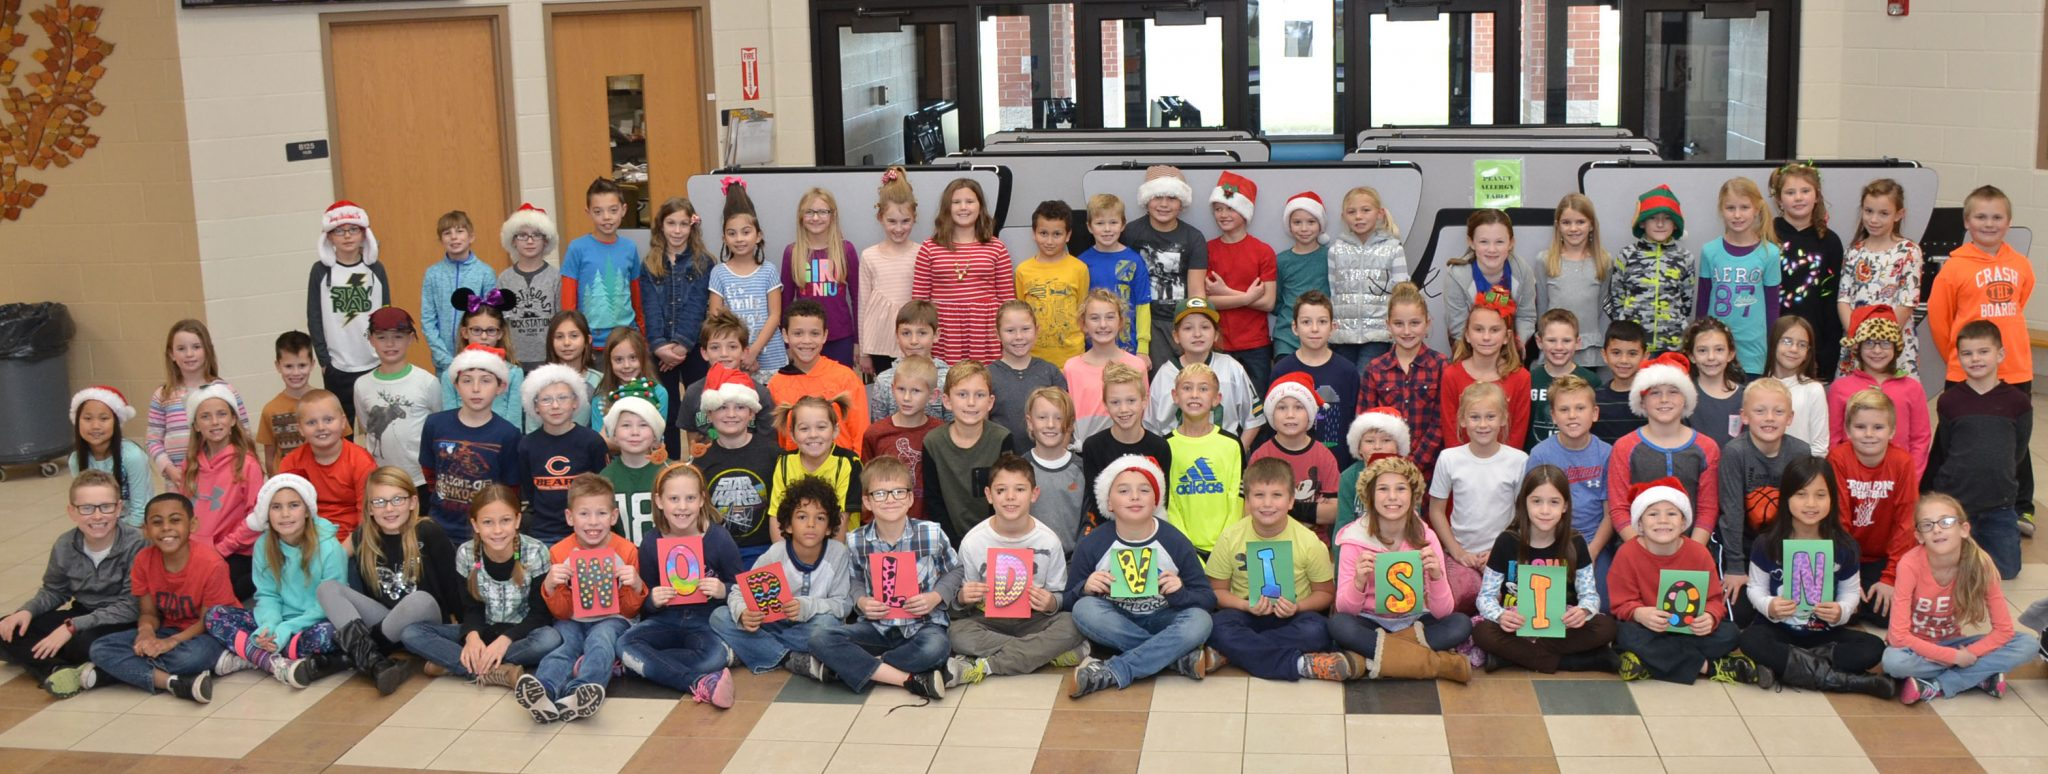 An image of students representing information about Northwest Indiana private elementary school. Reach out today!